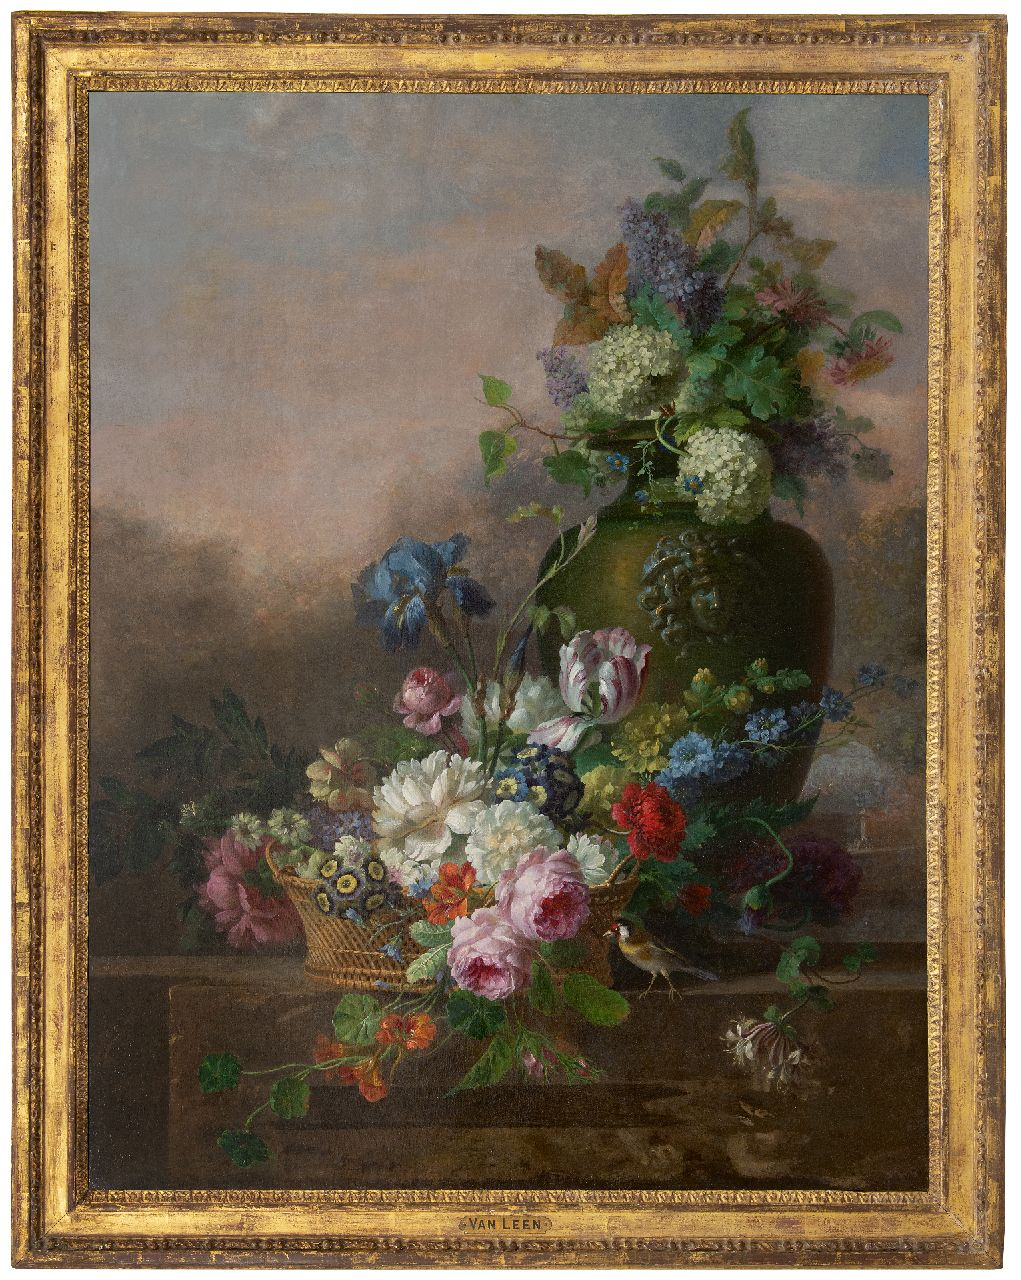 Leen W. van | Willem van Leen | Paintings offered for sale | A flower still life with roses, a tulip, an iris and other flowers, oil on canvas 116.2 x 90.8 cm